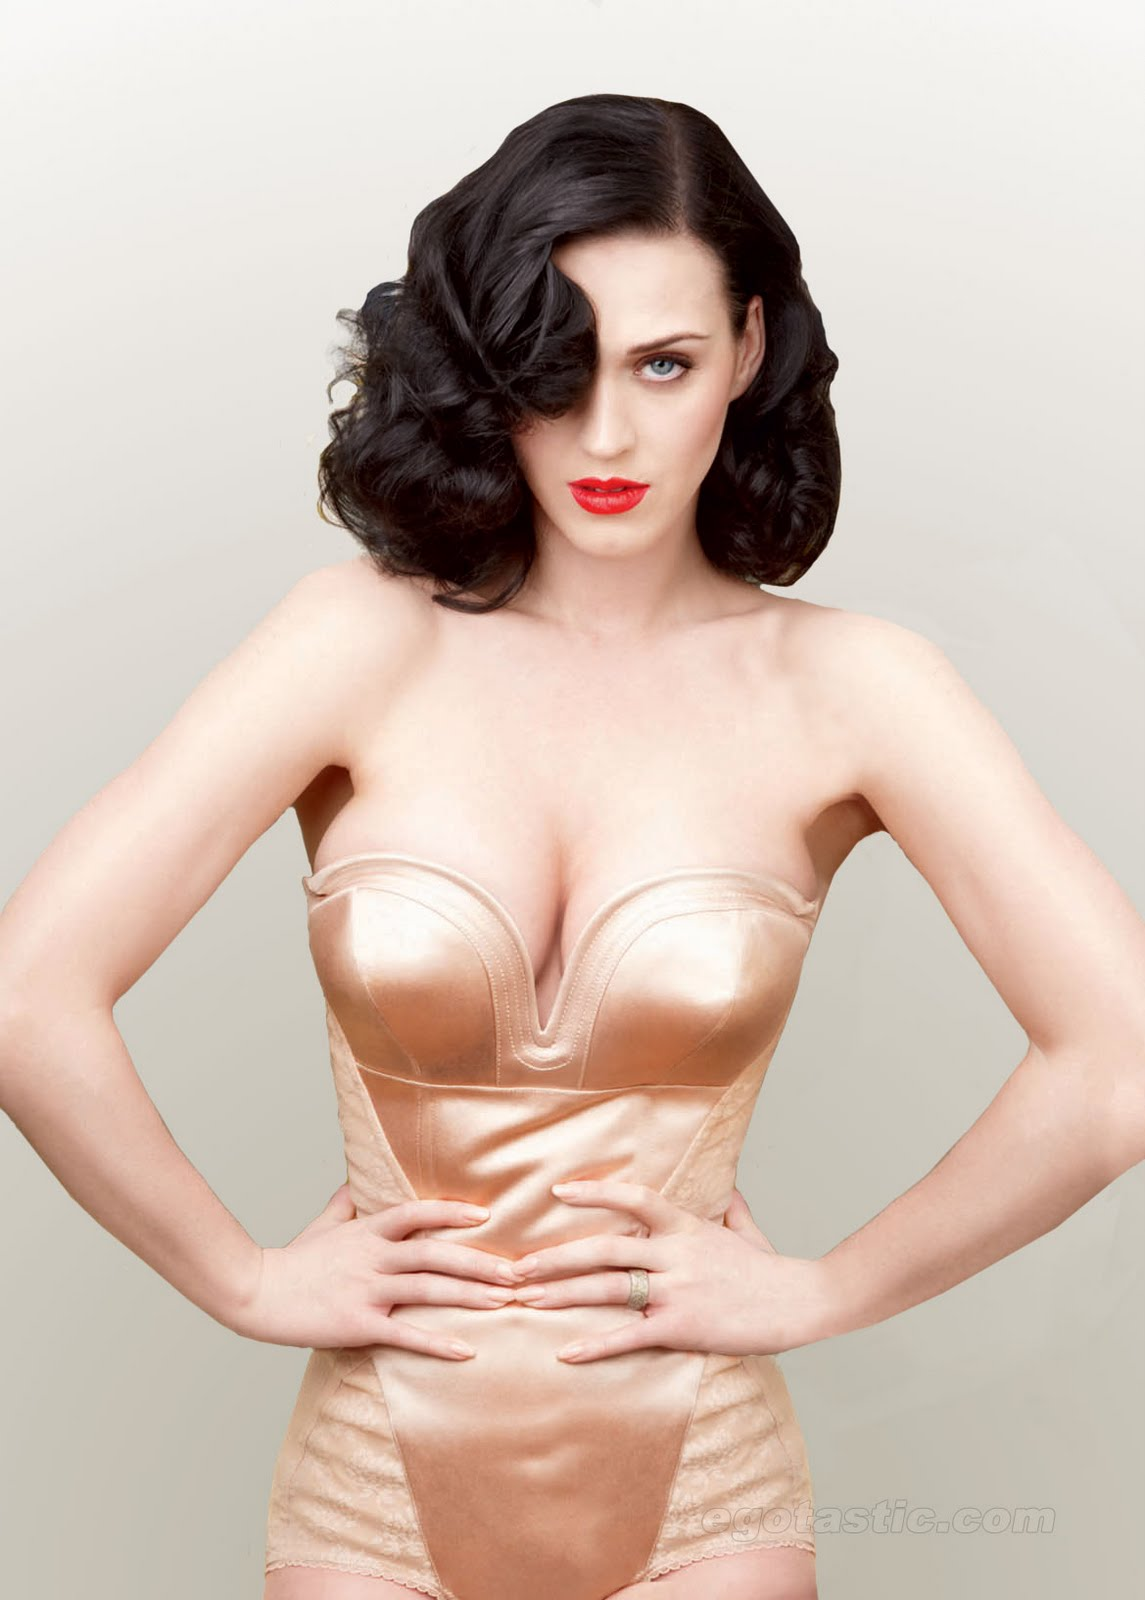 katy-perry-hot-body